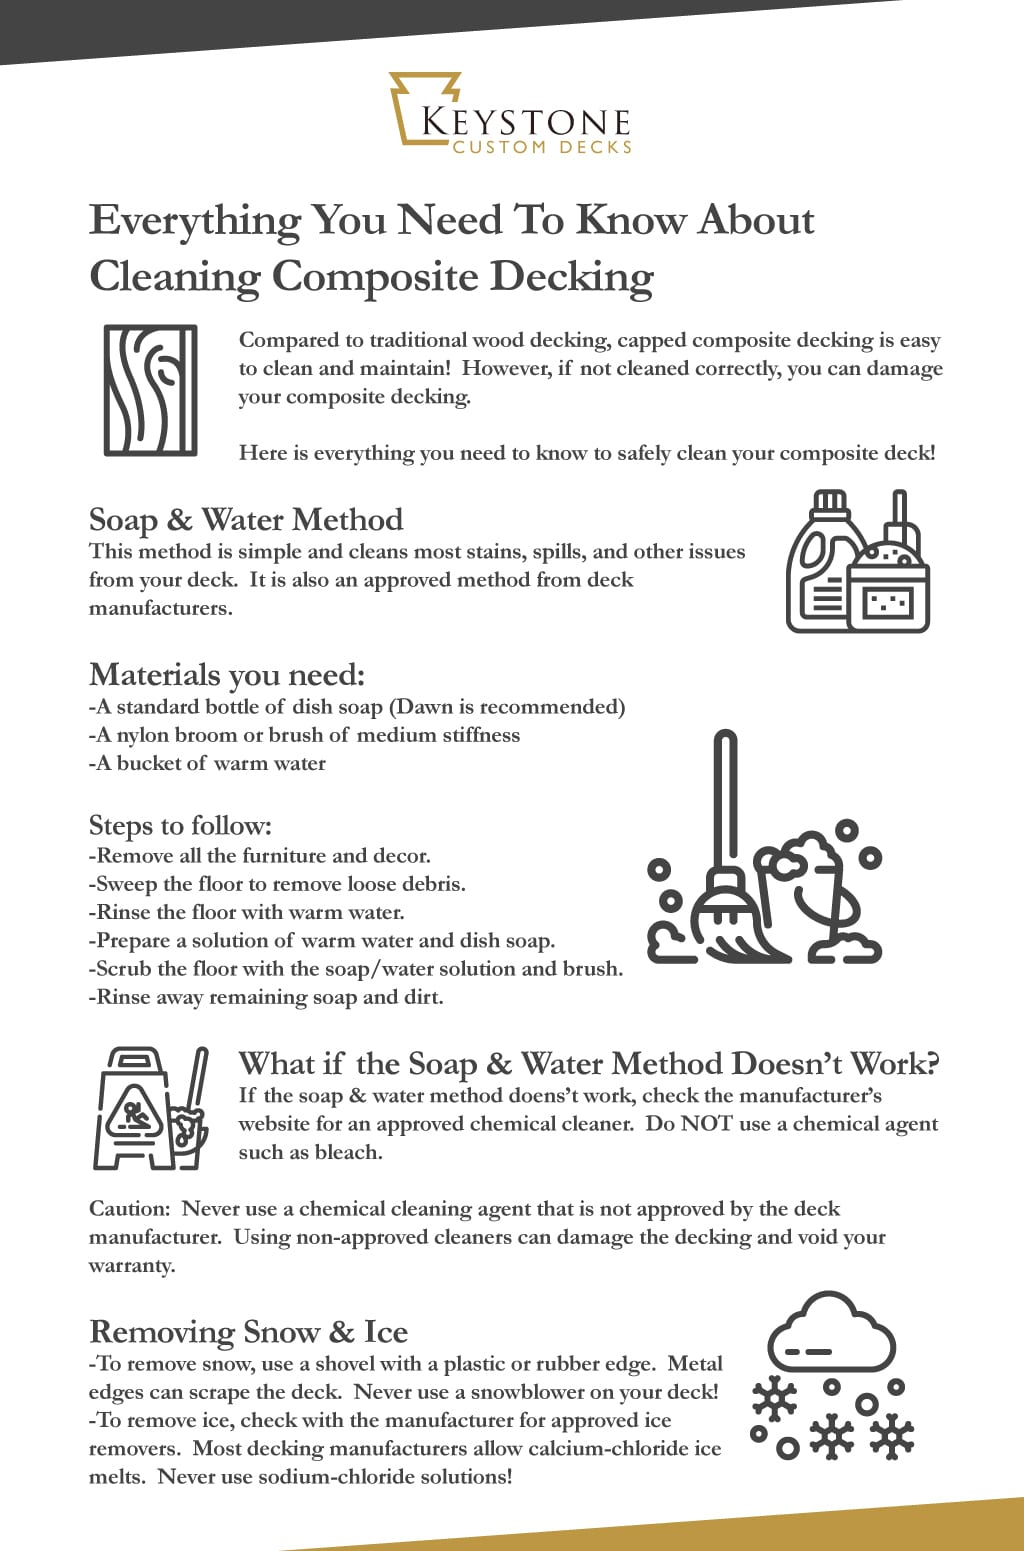 cleaning composite decking infographic